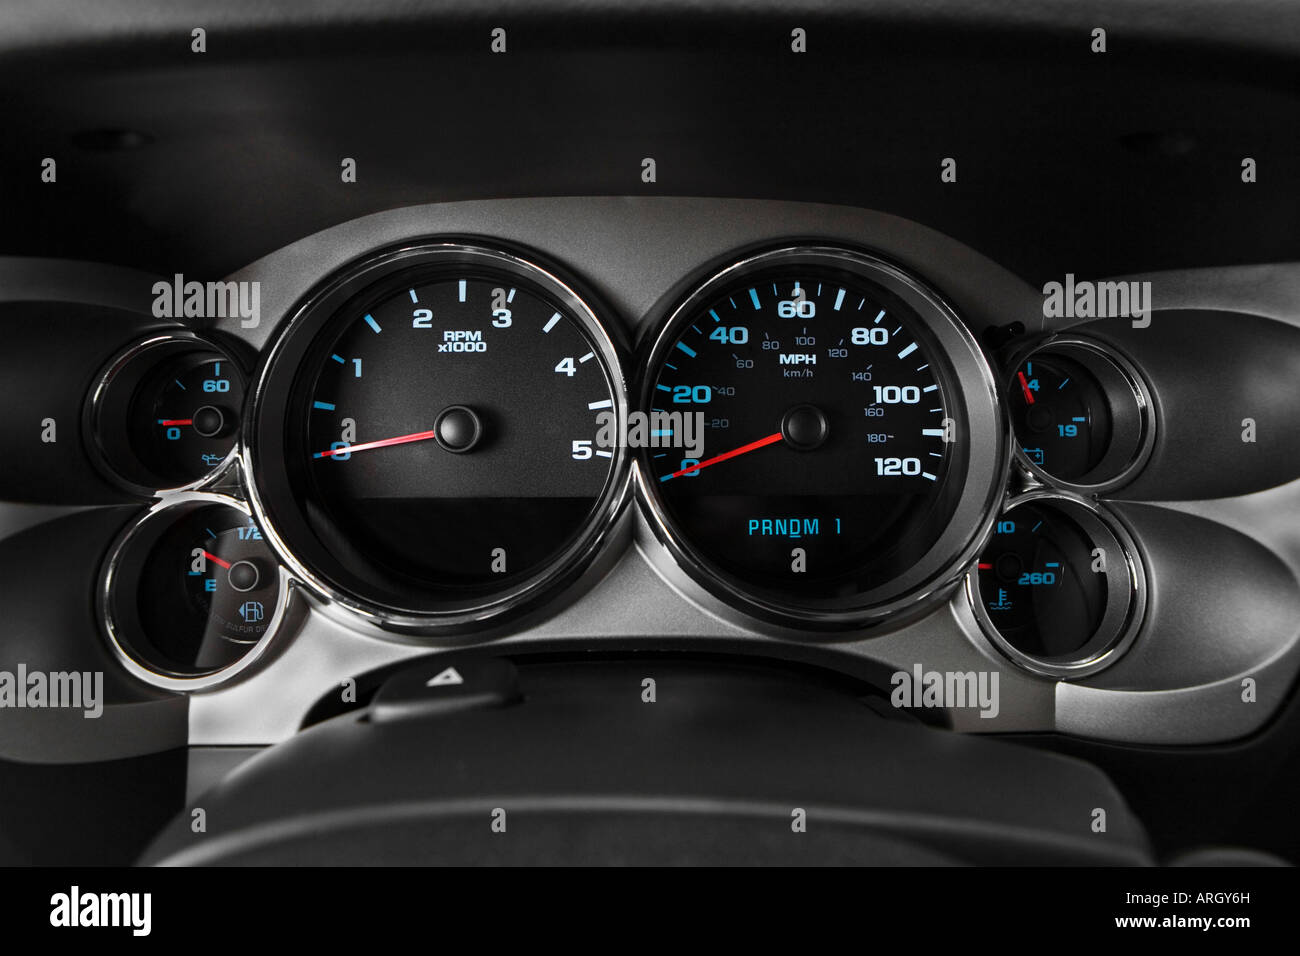 Silverado 2500 Stock Photos Images Alamy 2007 2500hd Fuel Filter Chevrolet Lt In Gray Speedometer Tachometer Image